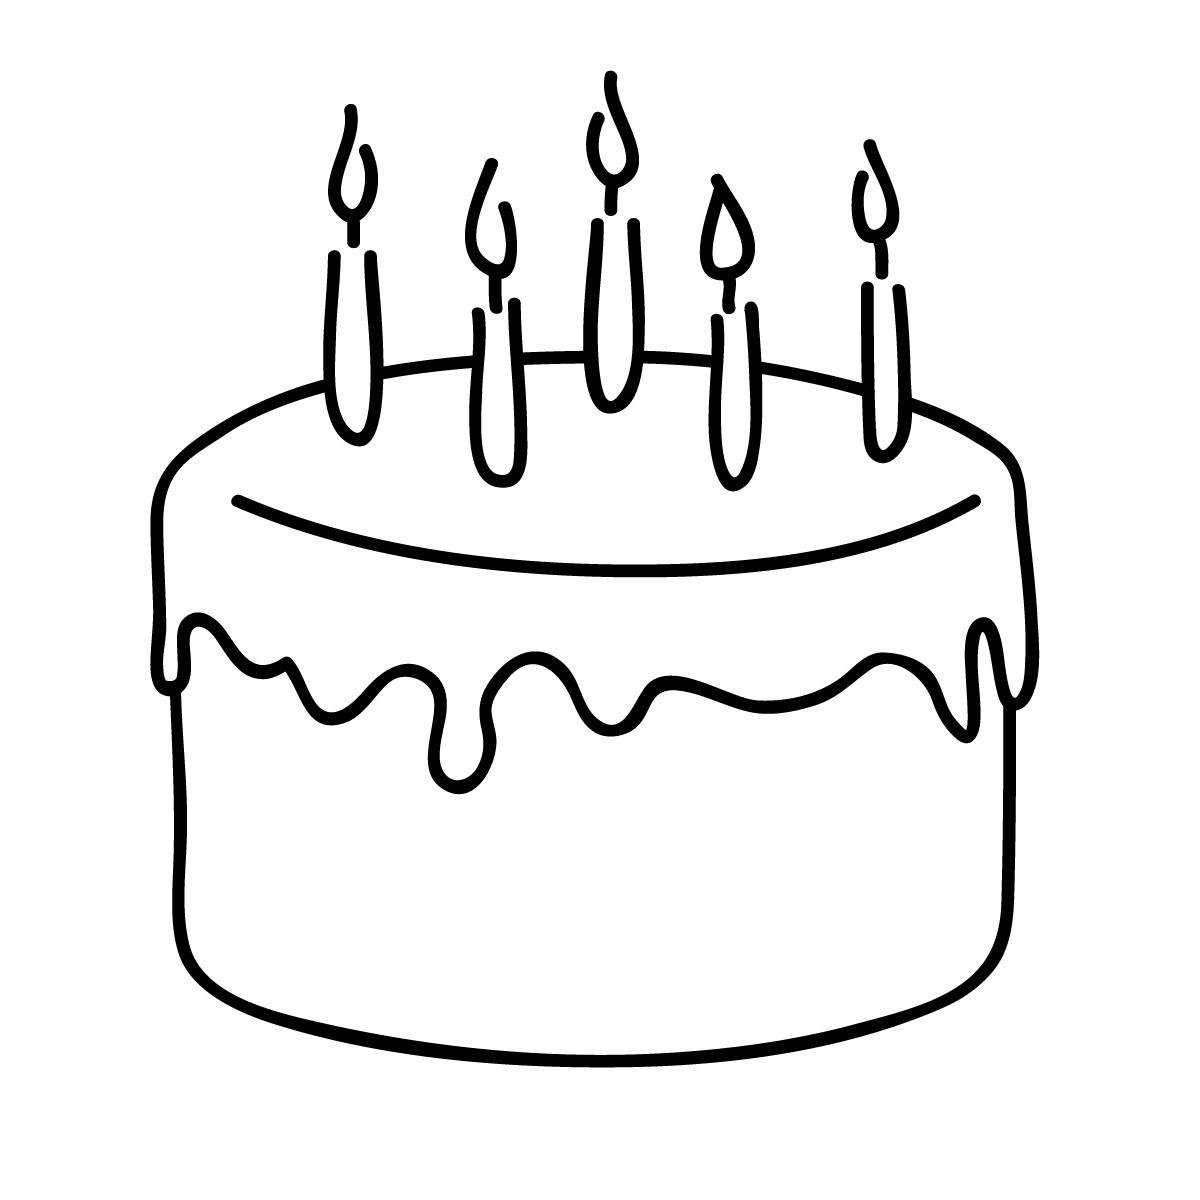 easy birthday pictures to draw ; simple-birthday-cake-drawing-birthday-cake-clip-art-black-clip-art-pinterest-coloring